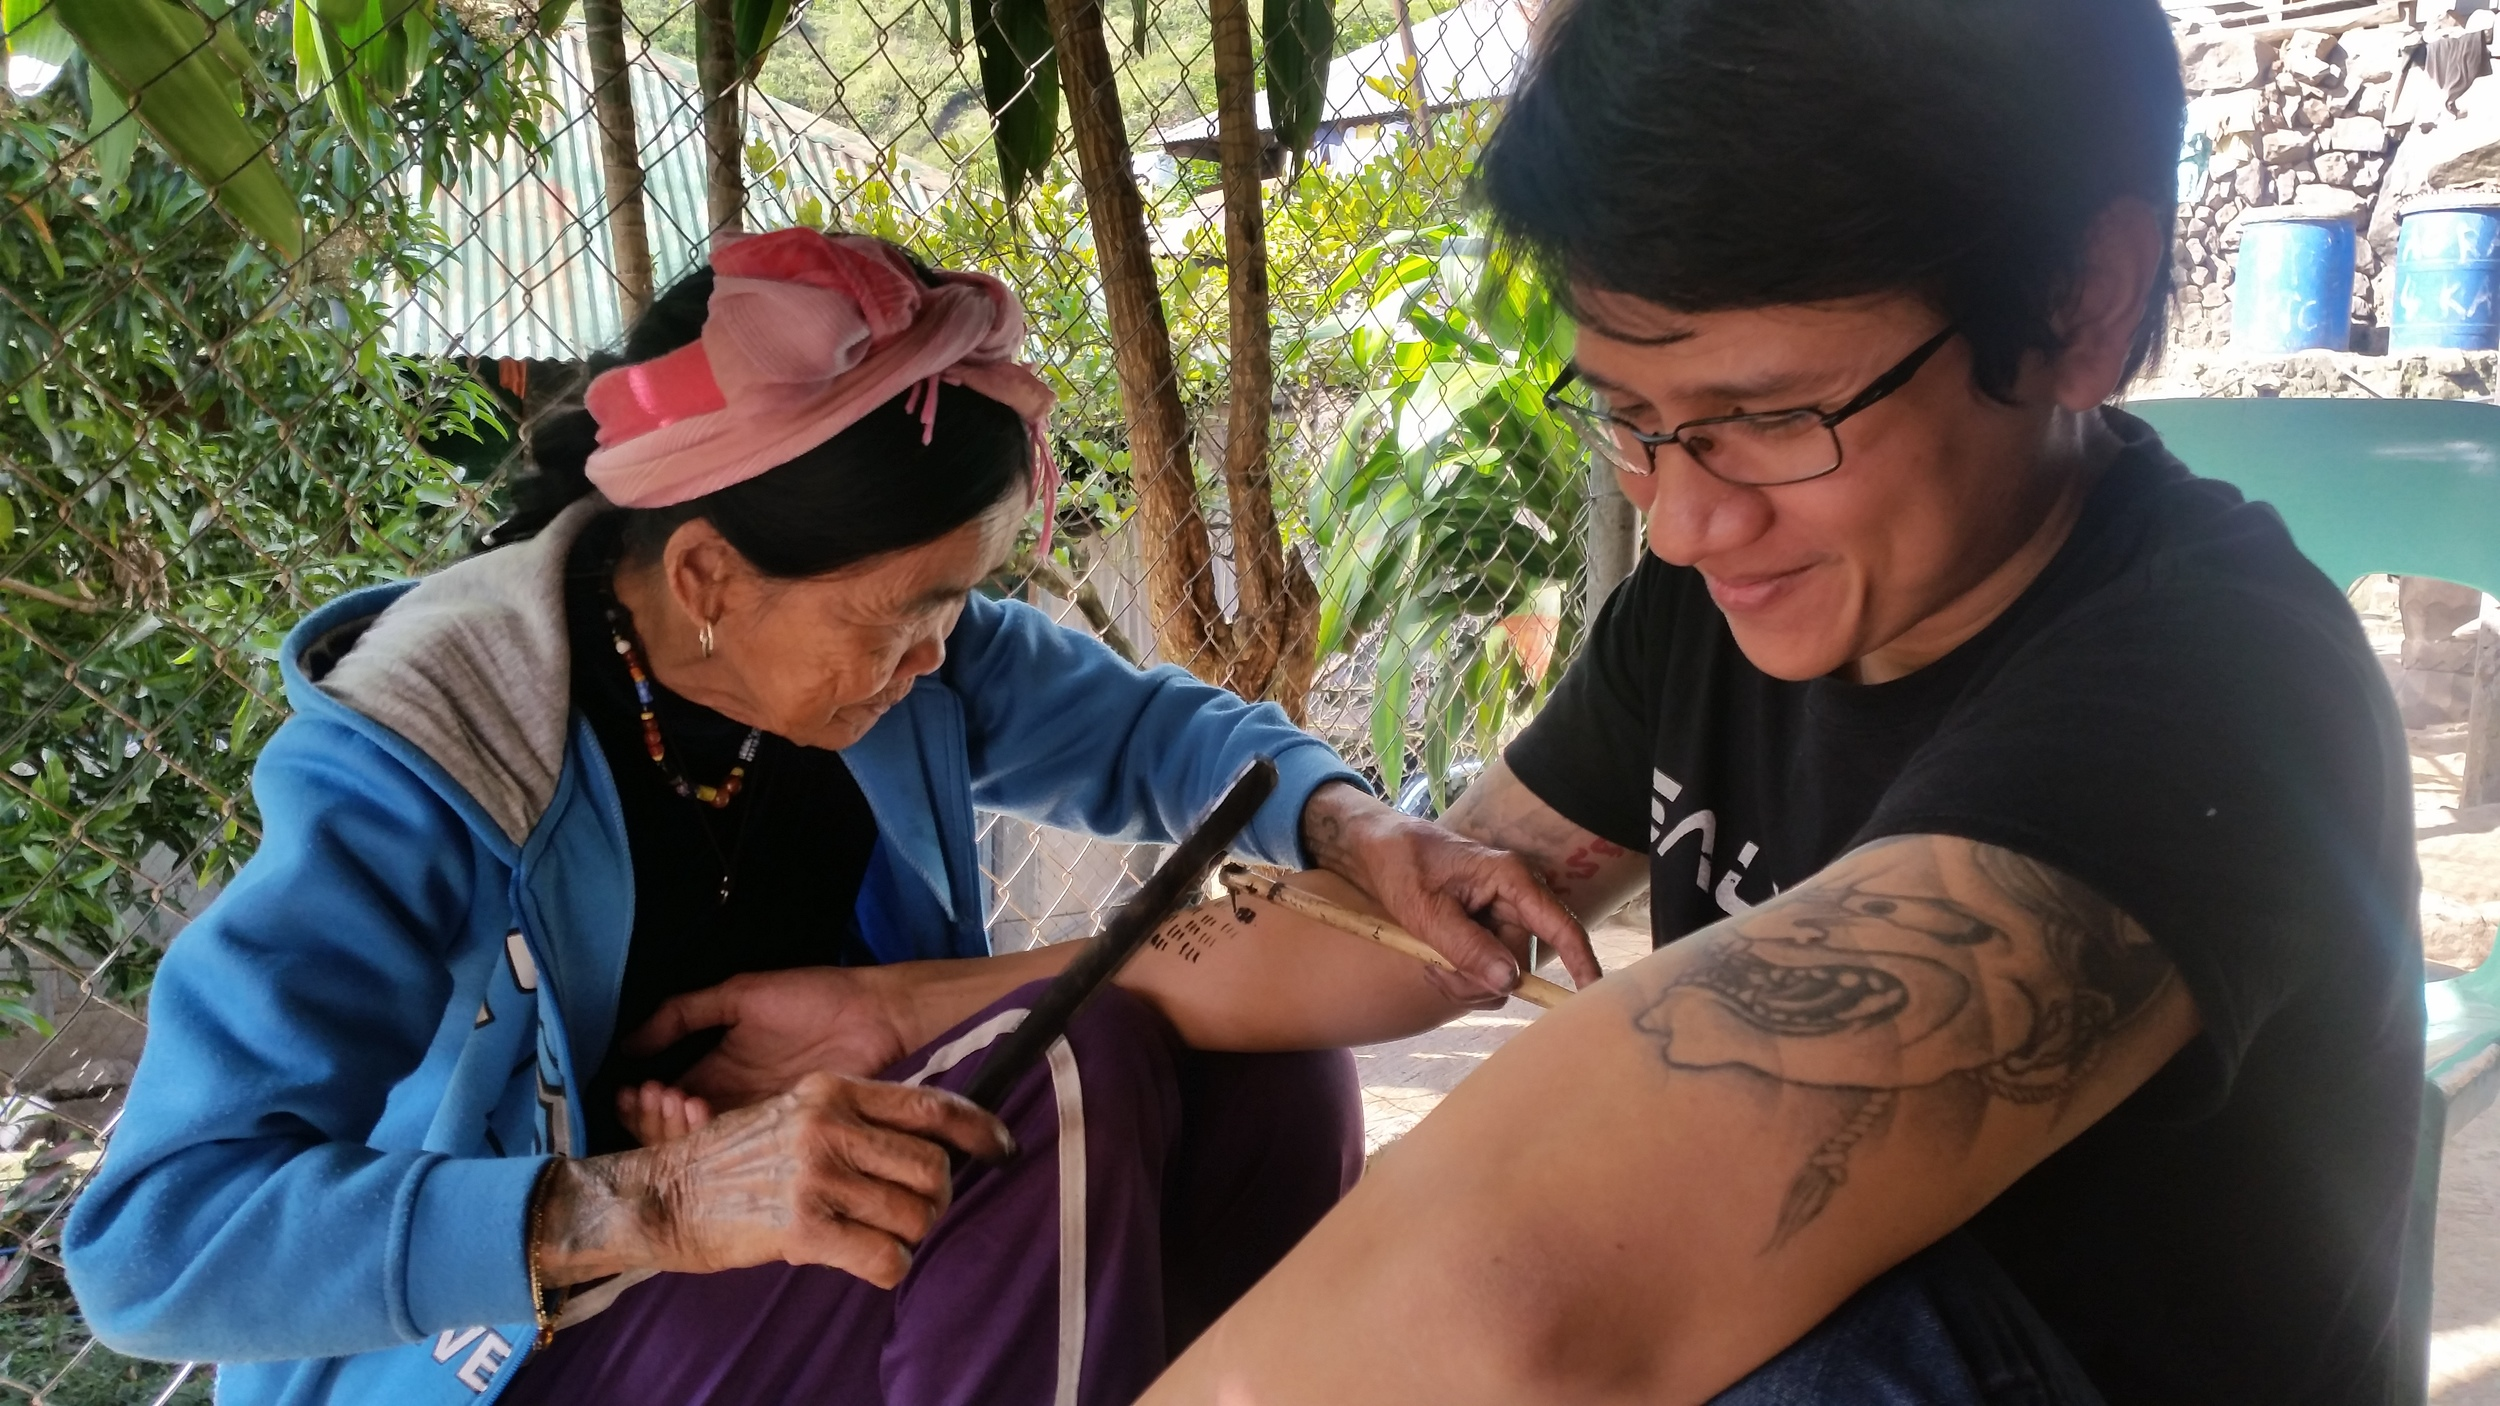 My boyfriend also getting a tattoo from Fang Od